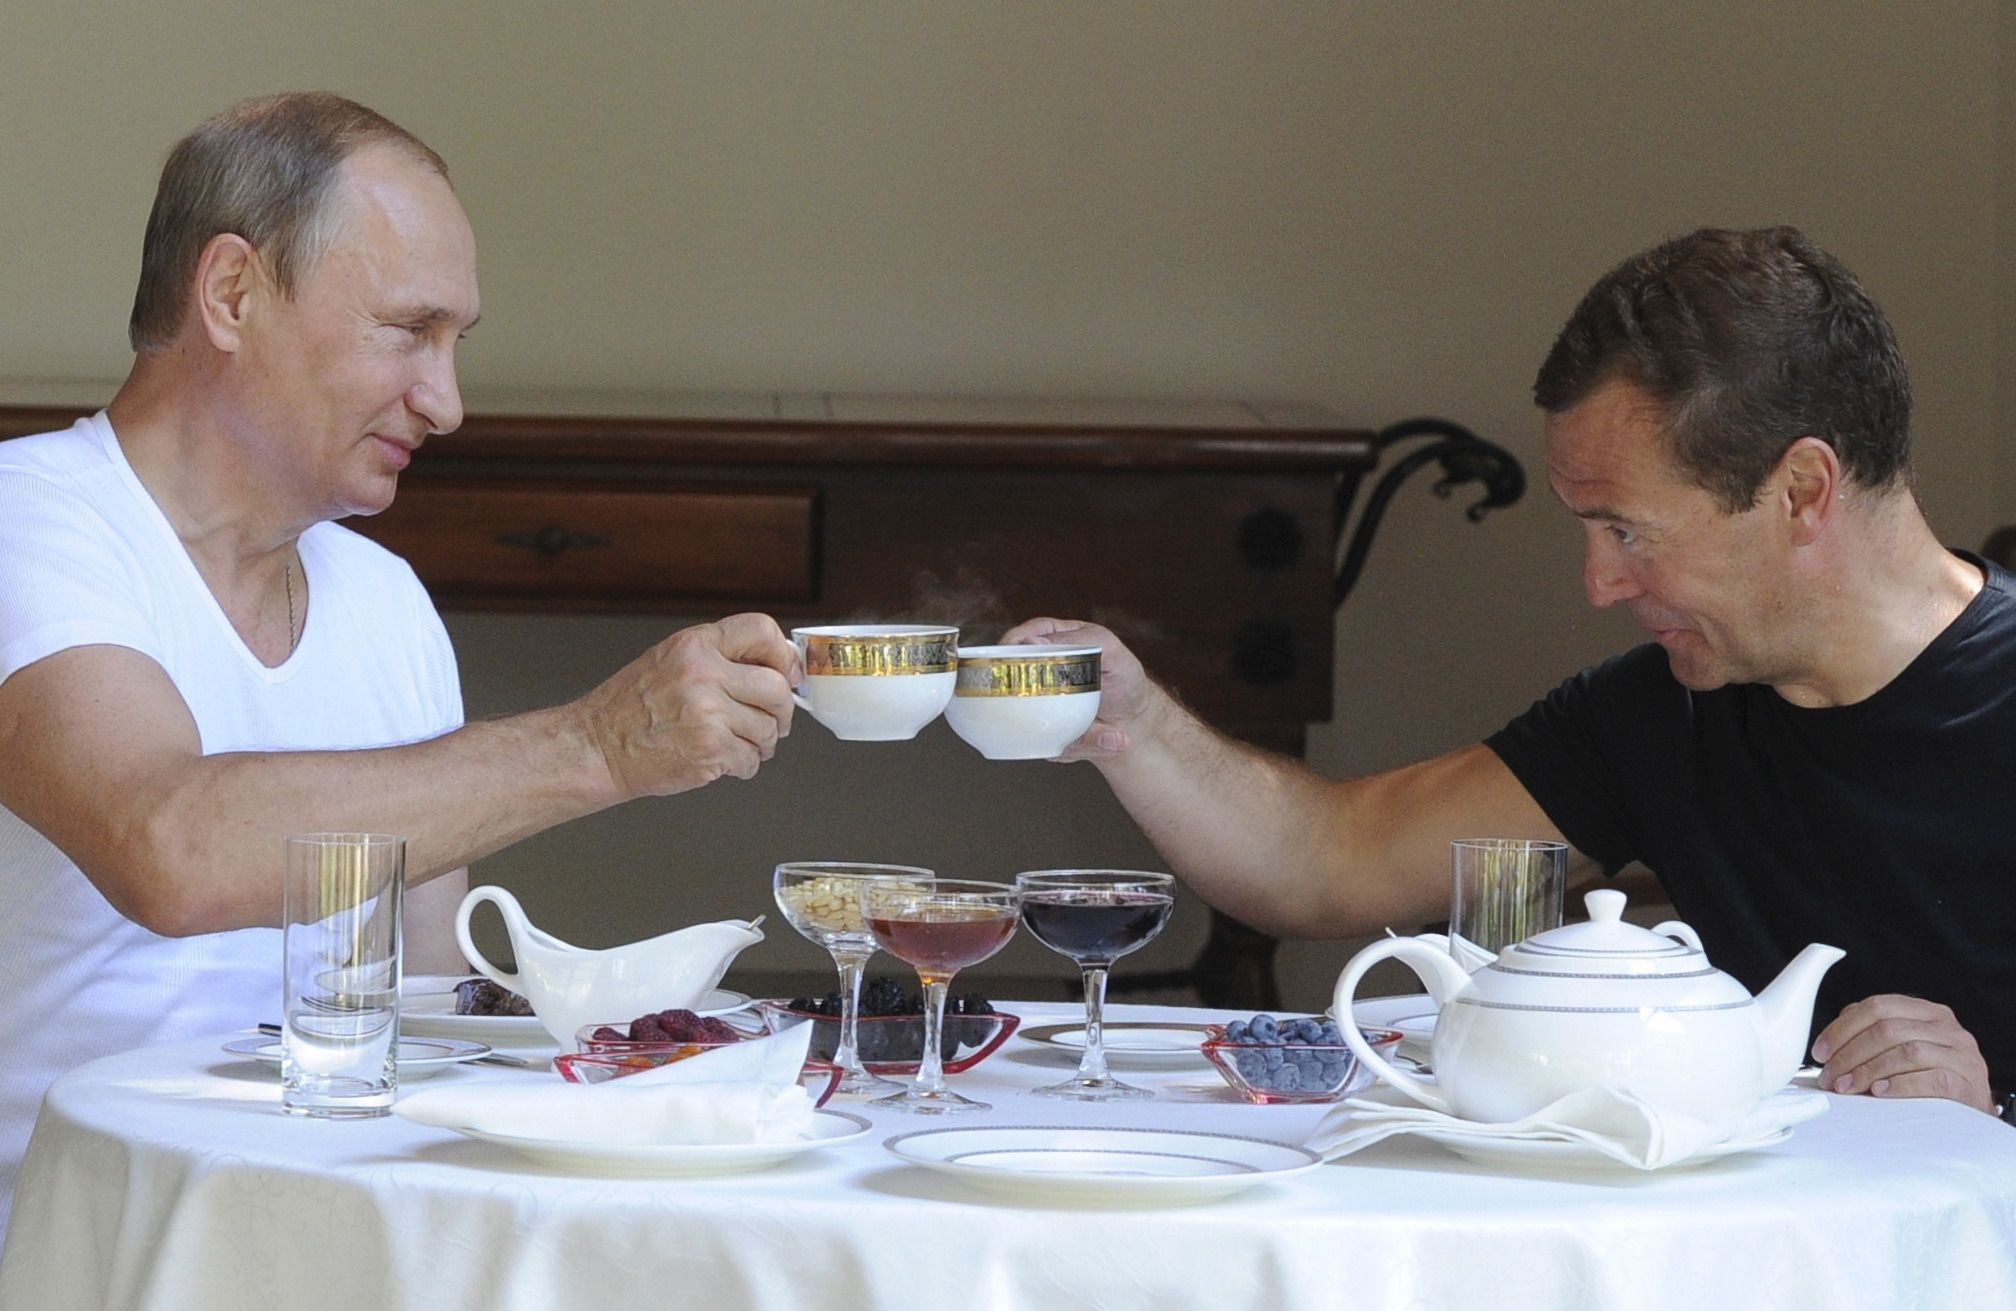 Putin and Medvedev have coffee